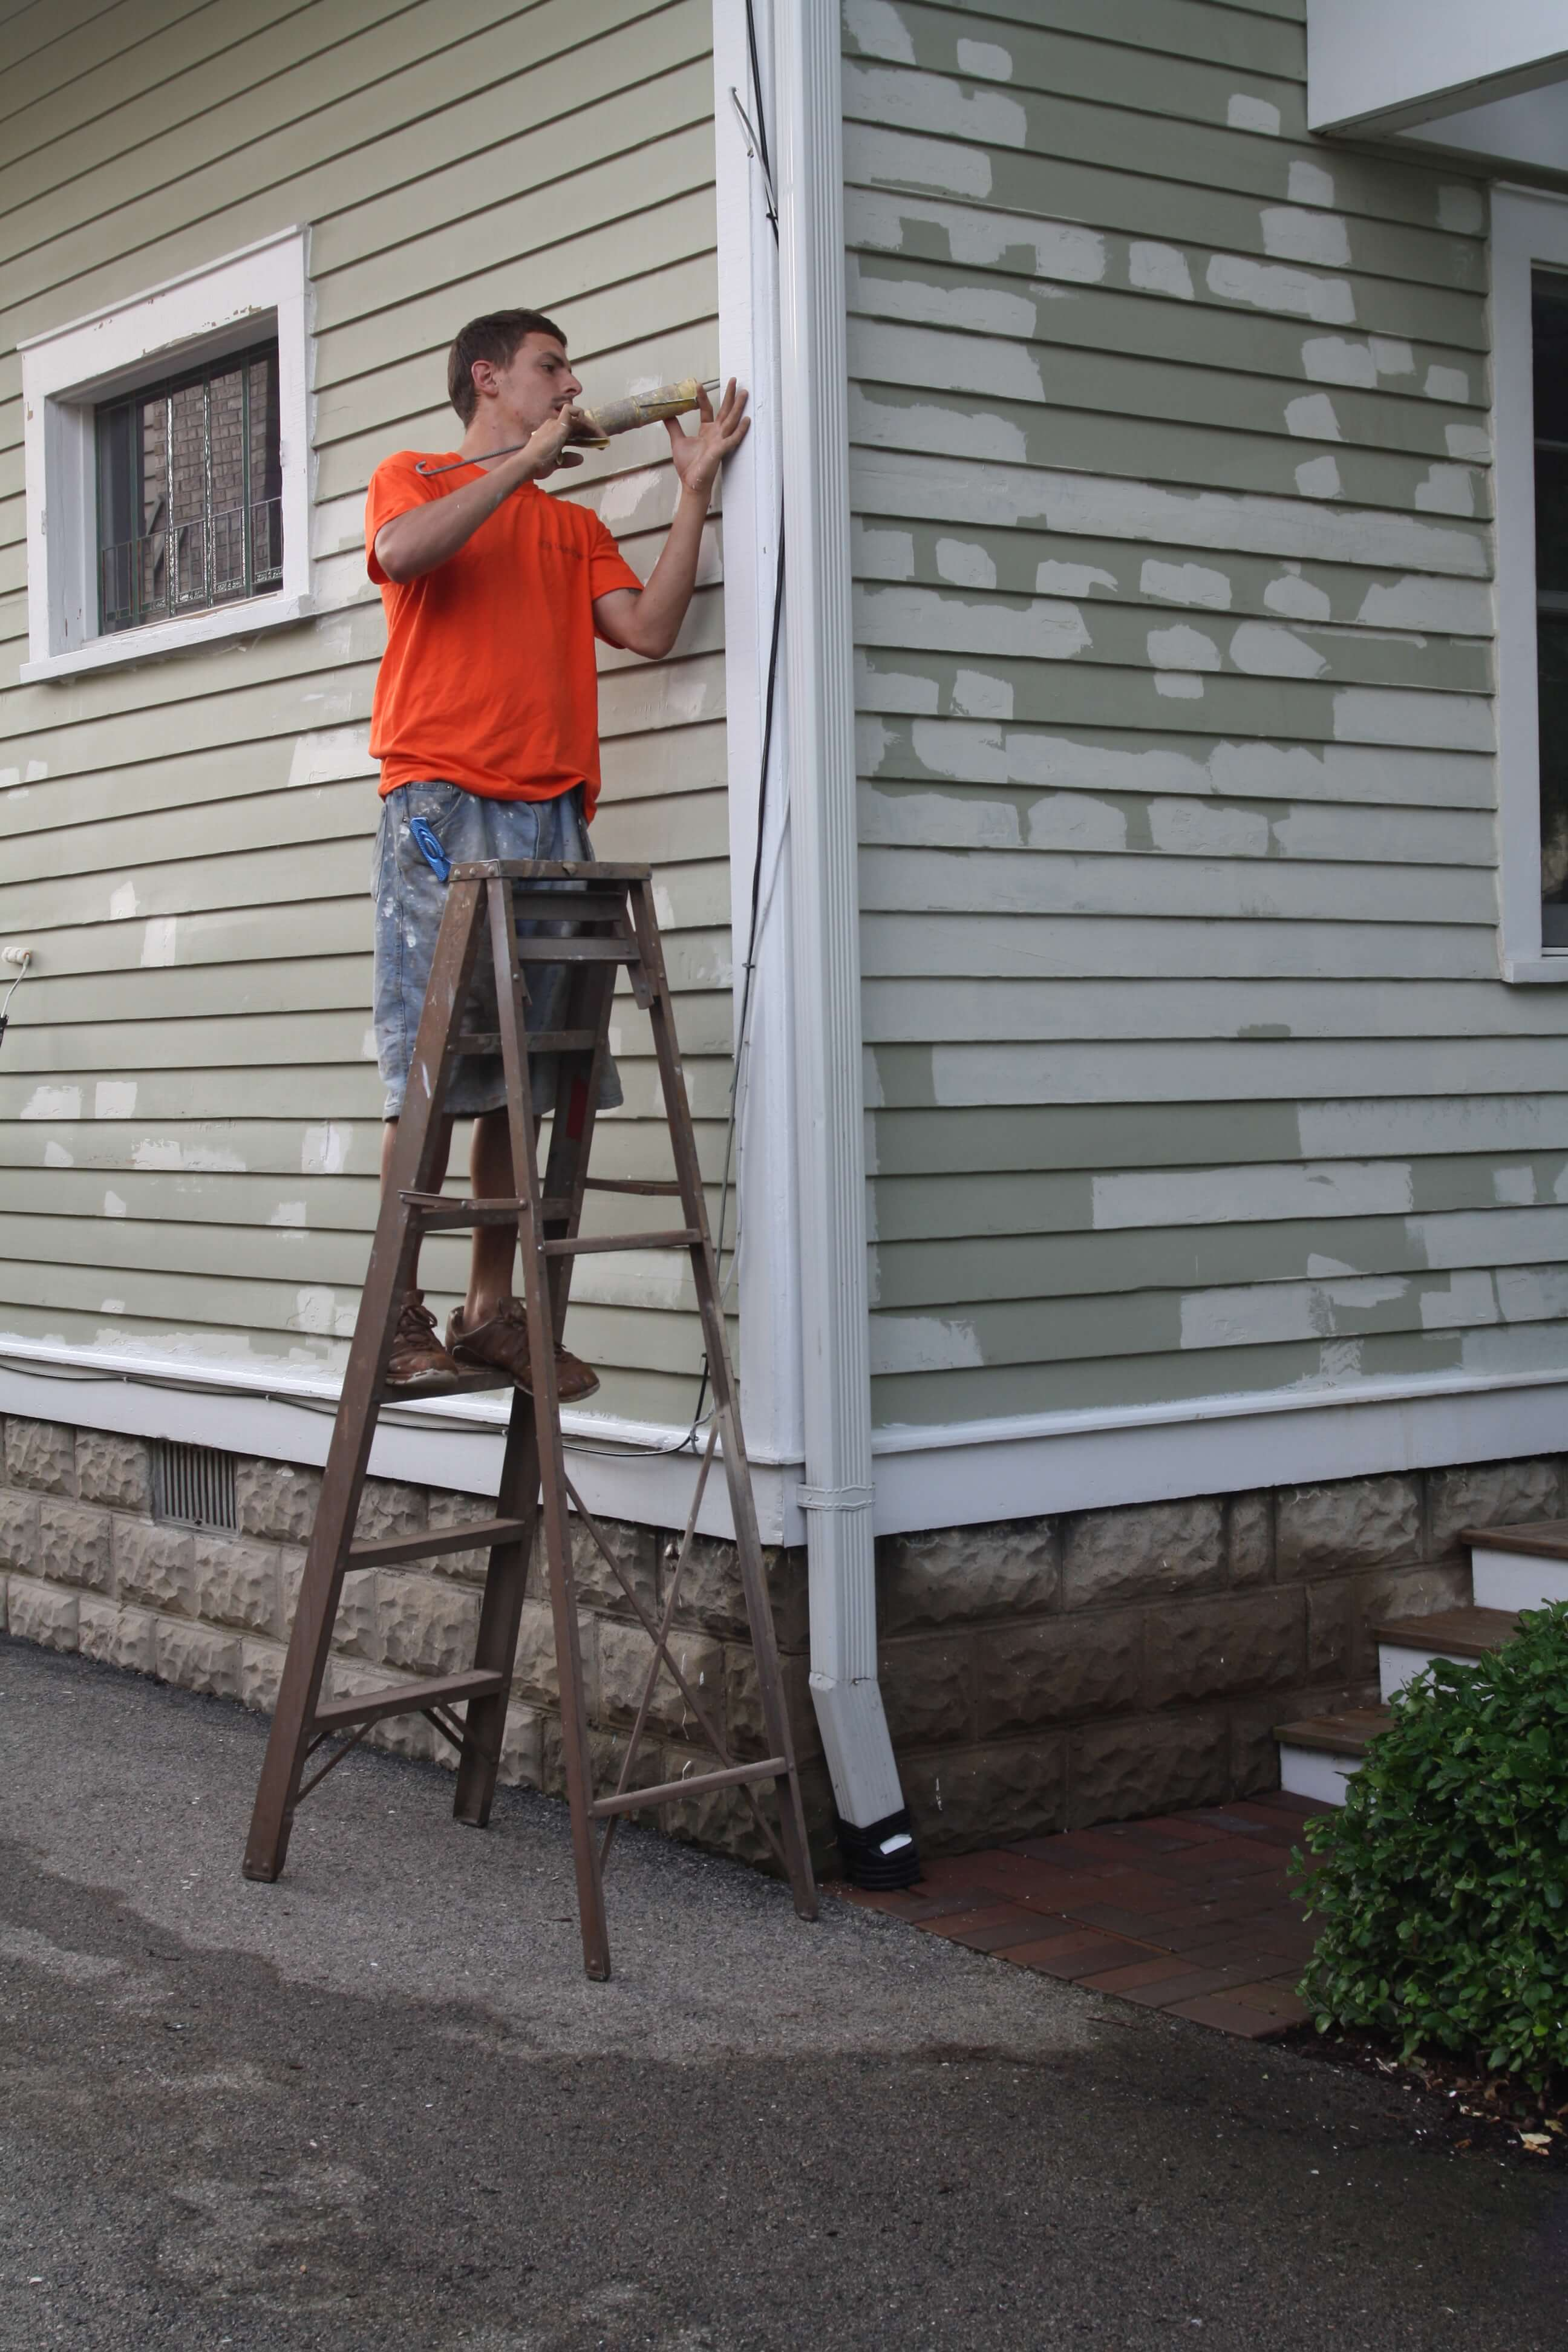 Worker adding caulk to the exterior trim of a house